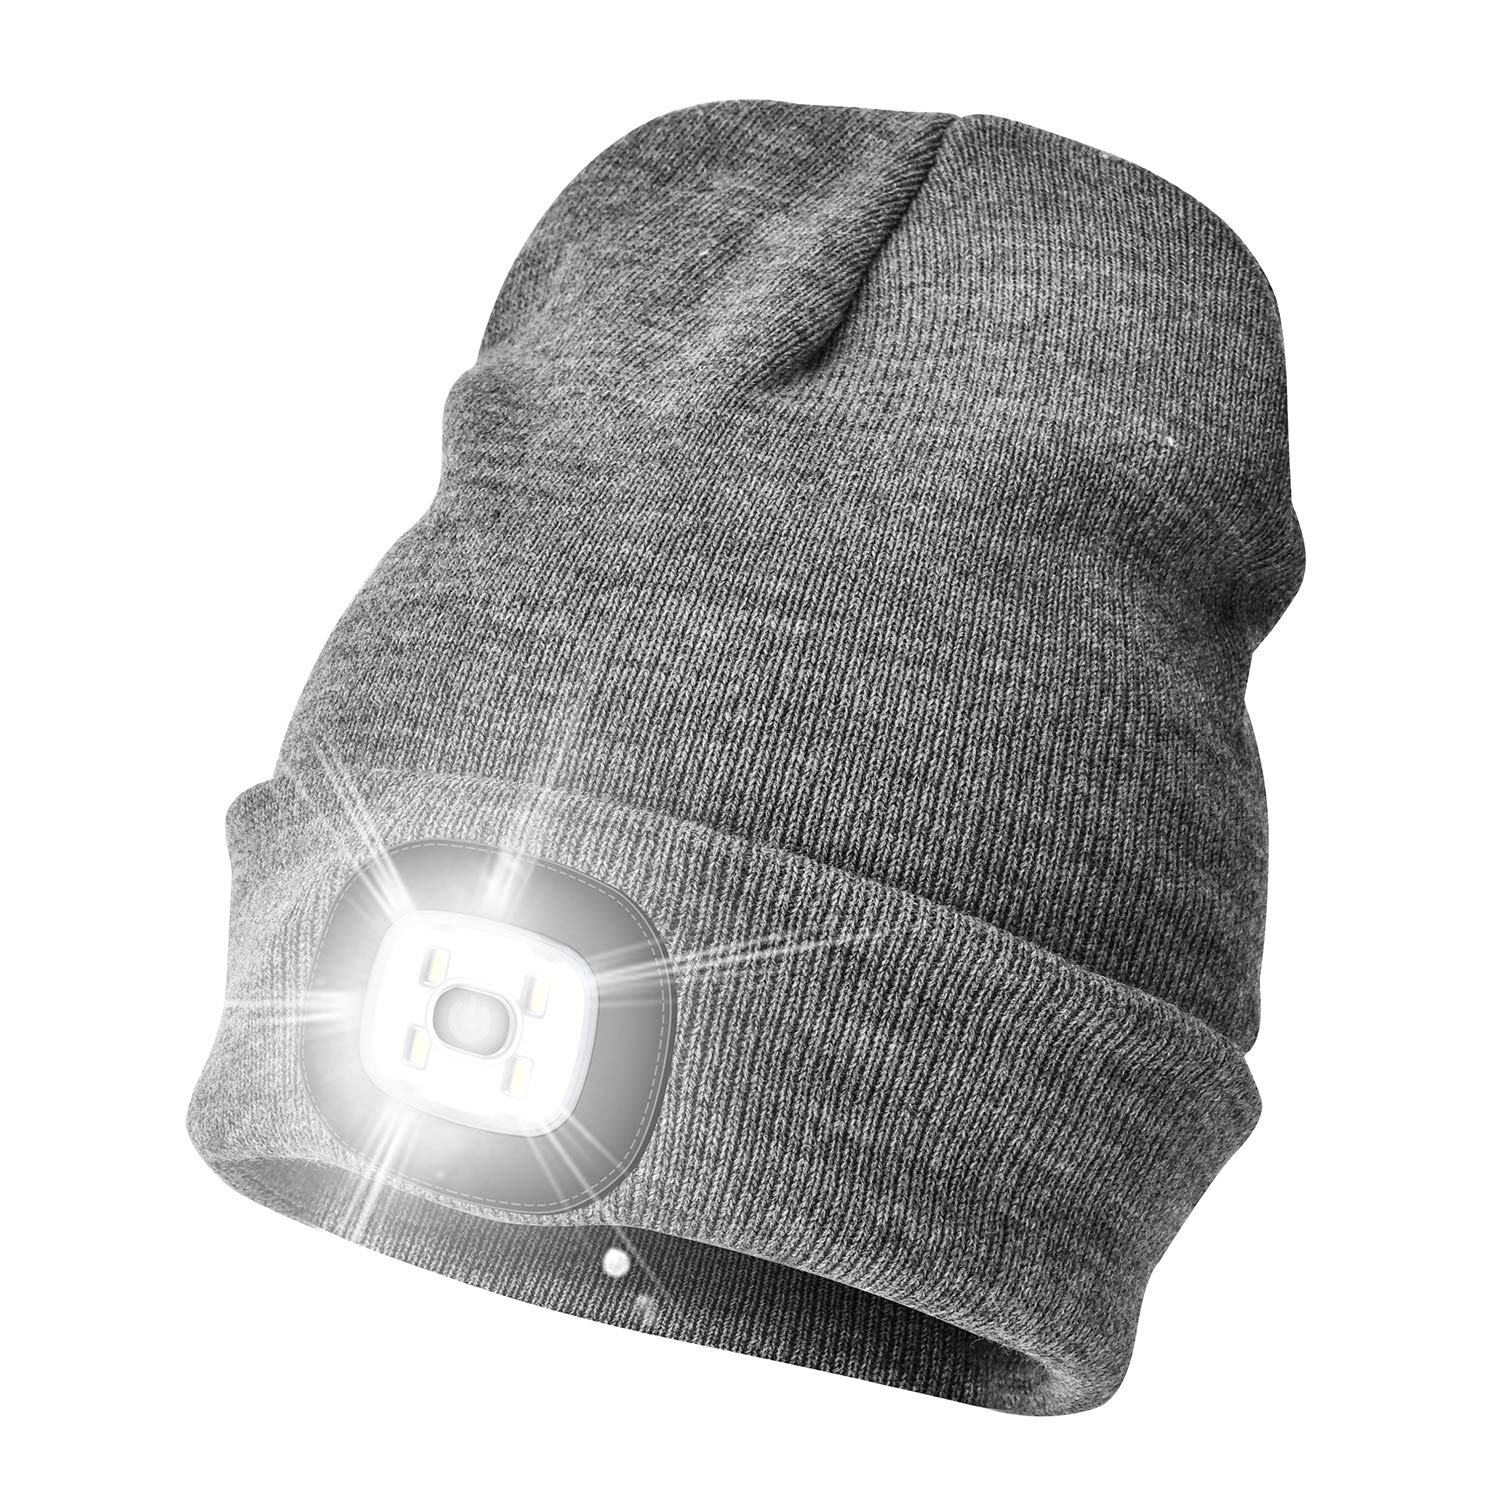 WEITOO Unisex Bright Knit 4 LED Beanie Hat with Light USB Rechargeable Hands Free Lighted Headlamp Torch Cap